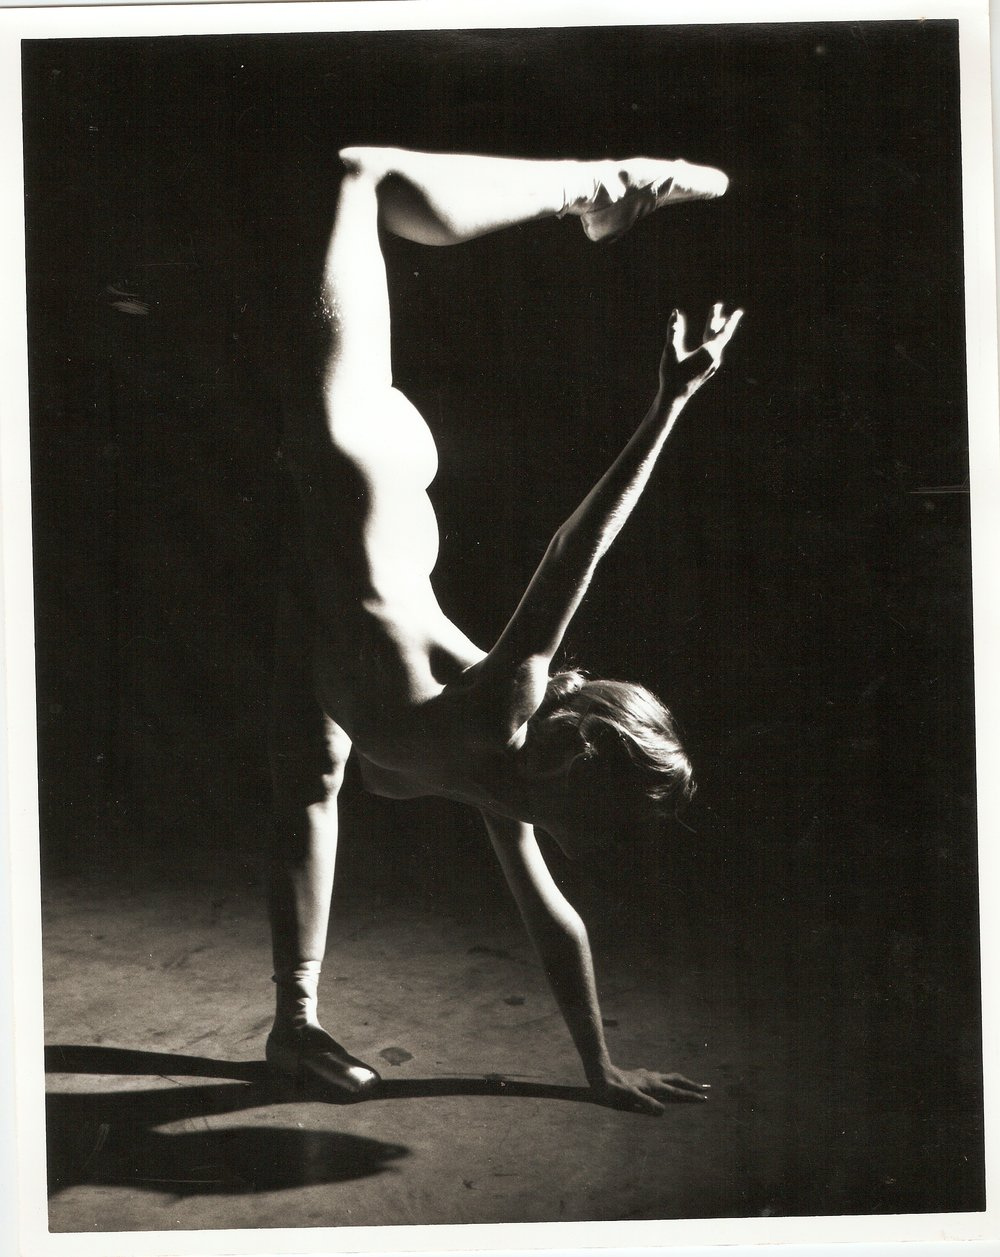 Loren Ellis Ballet  in Fla. Painting Studio 2 of 3 8x10 1979.jpg